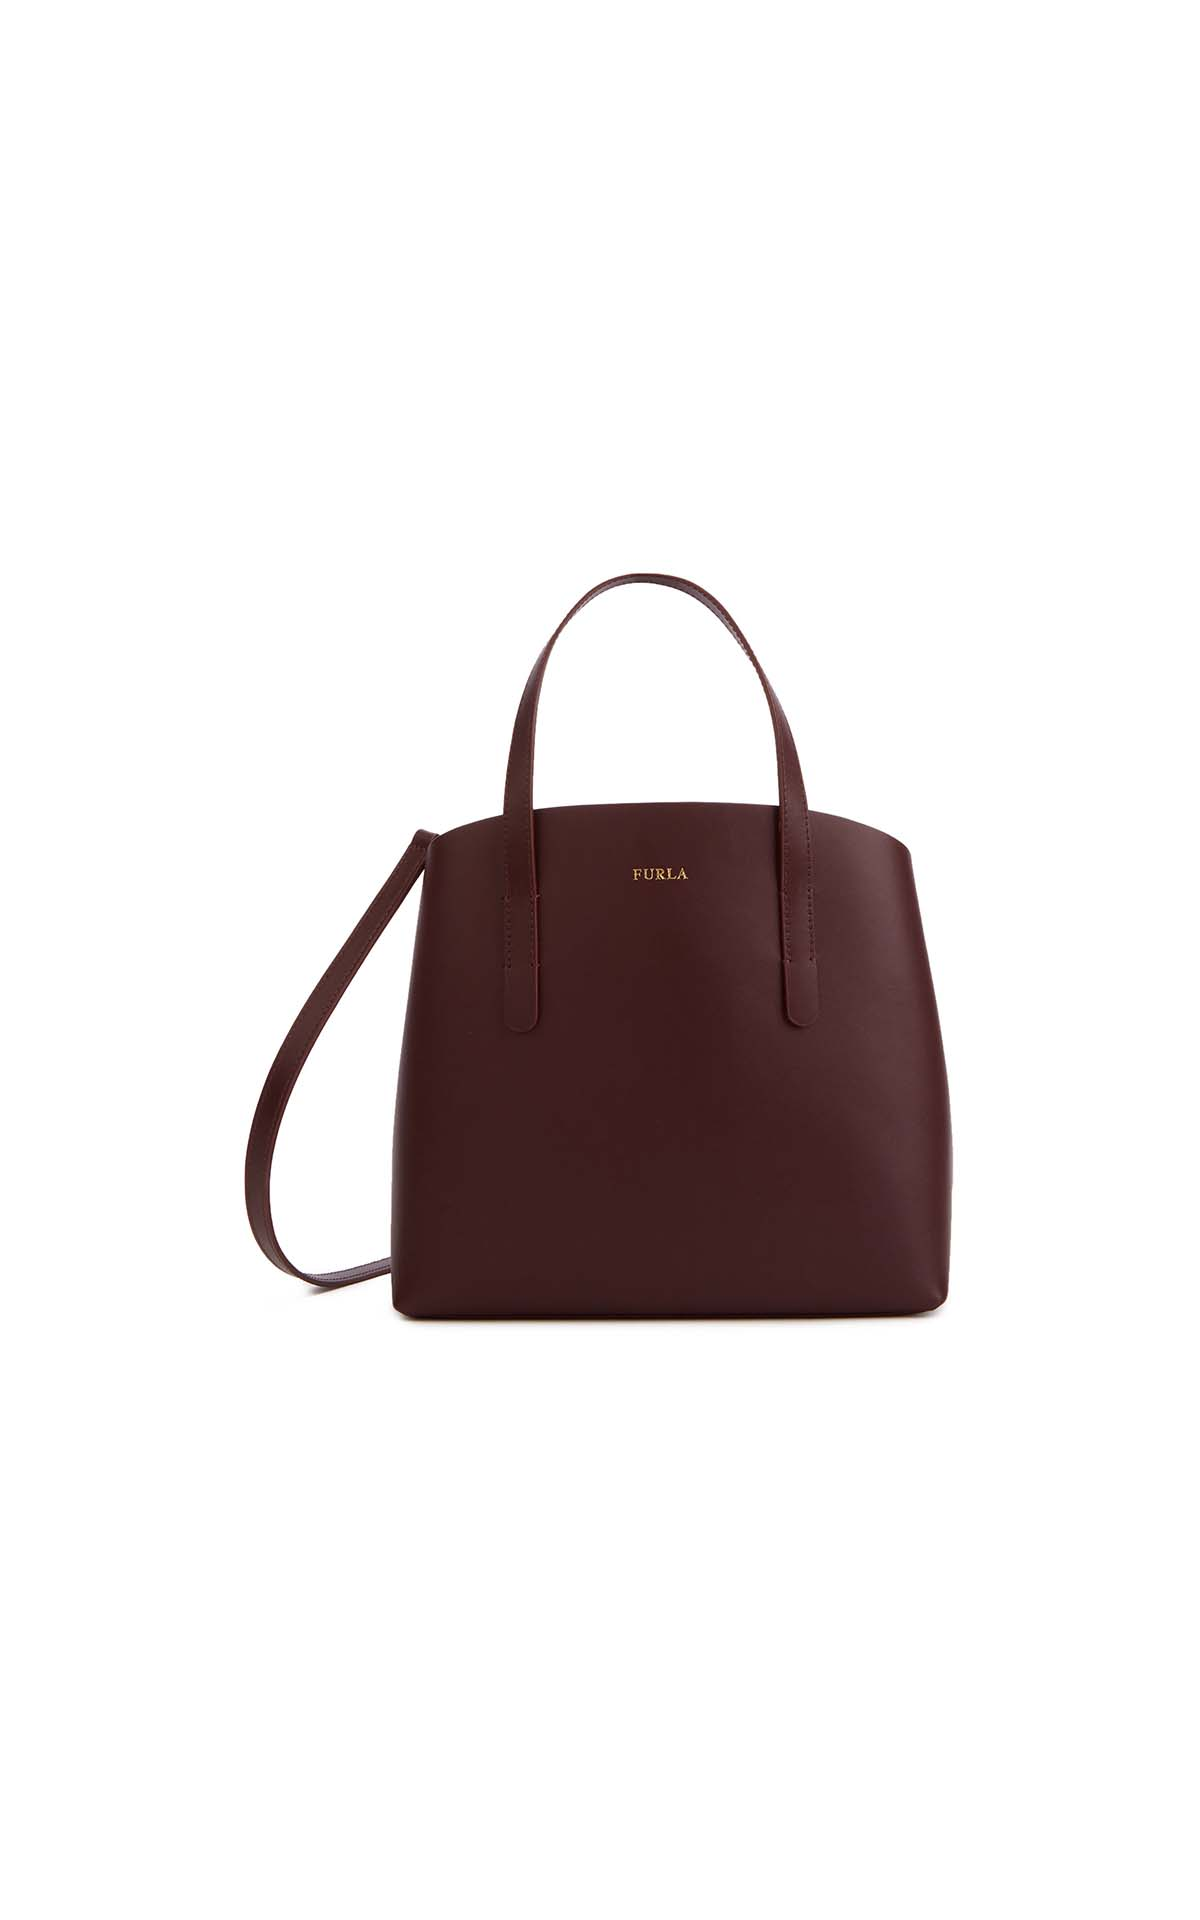 Furla paradise small tote in burgundy at The Bicester Village Shopping Collection